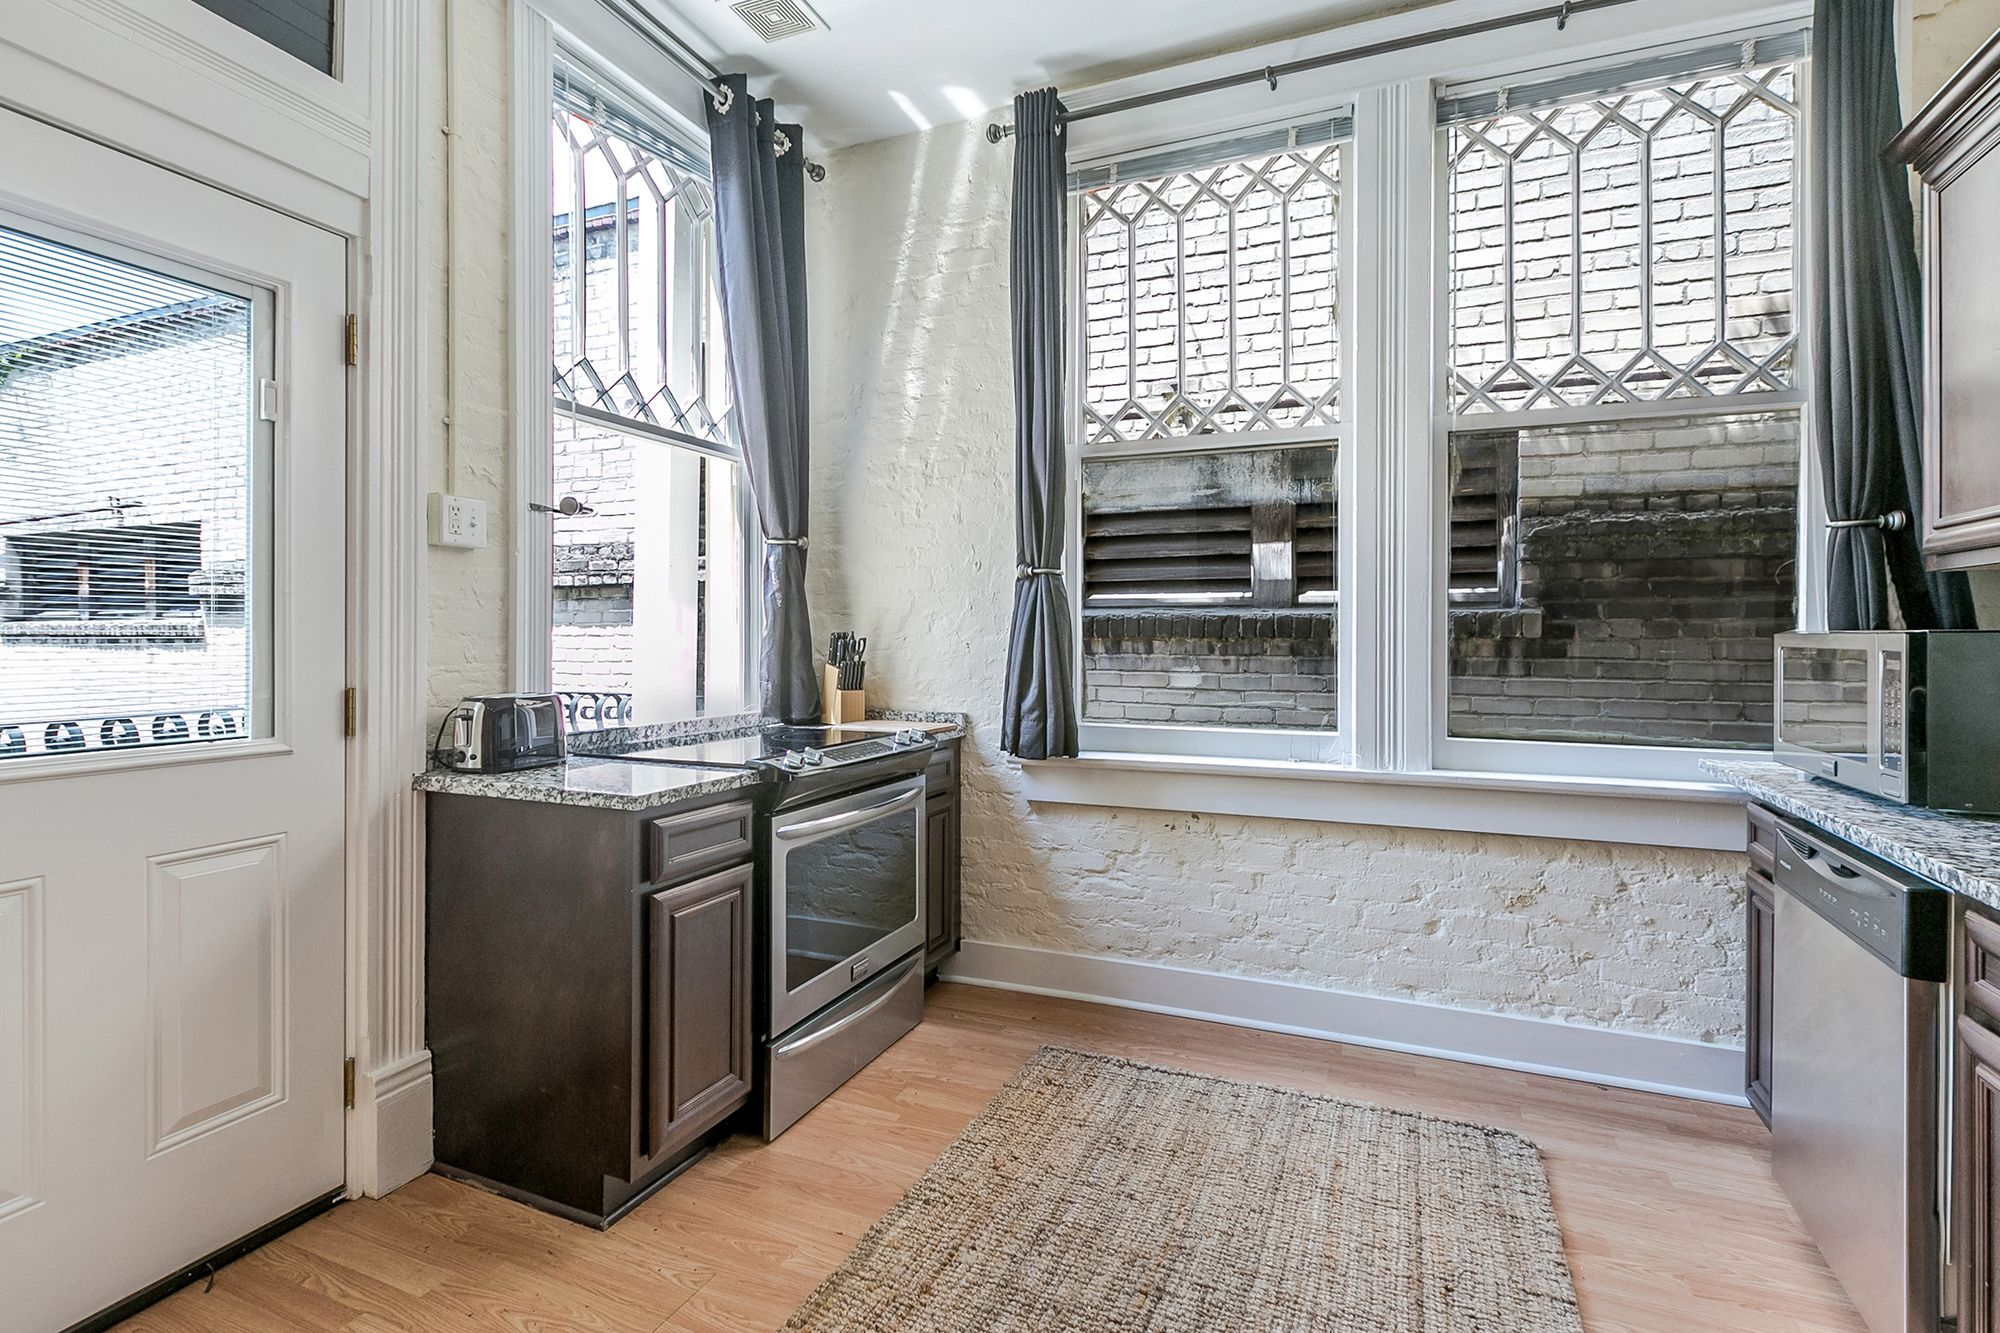 Chic 2BR in Arts Warehouse District by Sonder